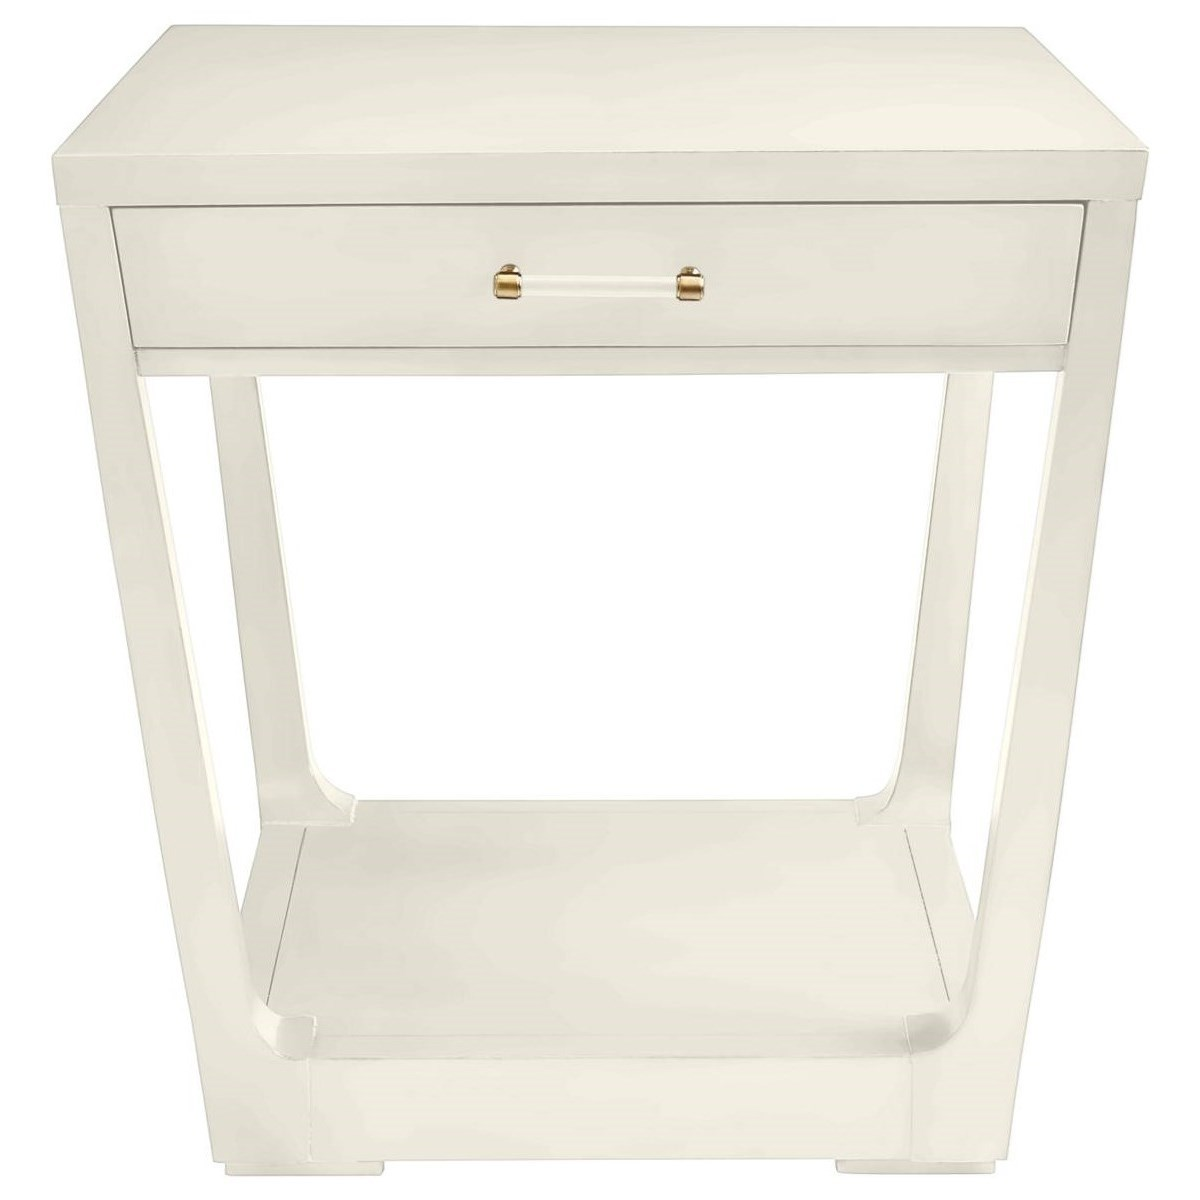 Stanley Furniture Coastal Living Oasis Meridian Square Lamp Table - Item Number: 527-25-14